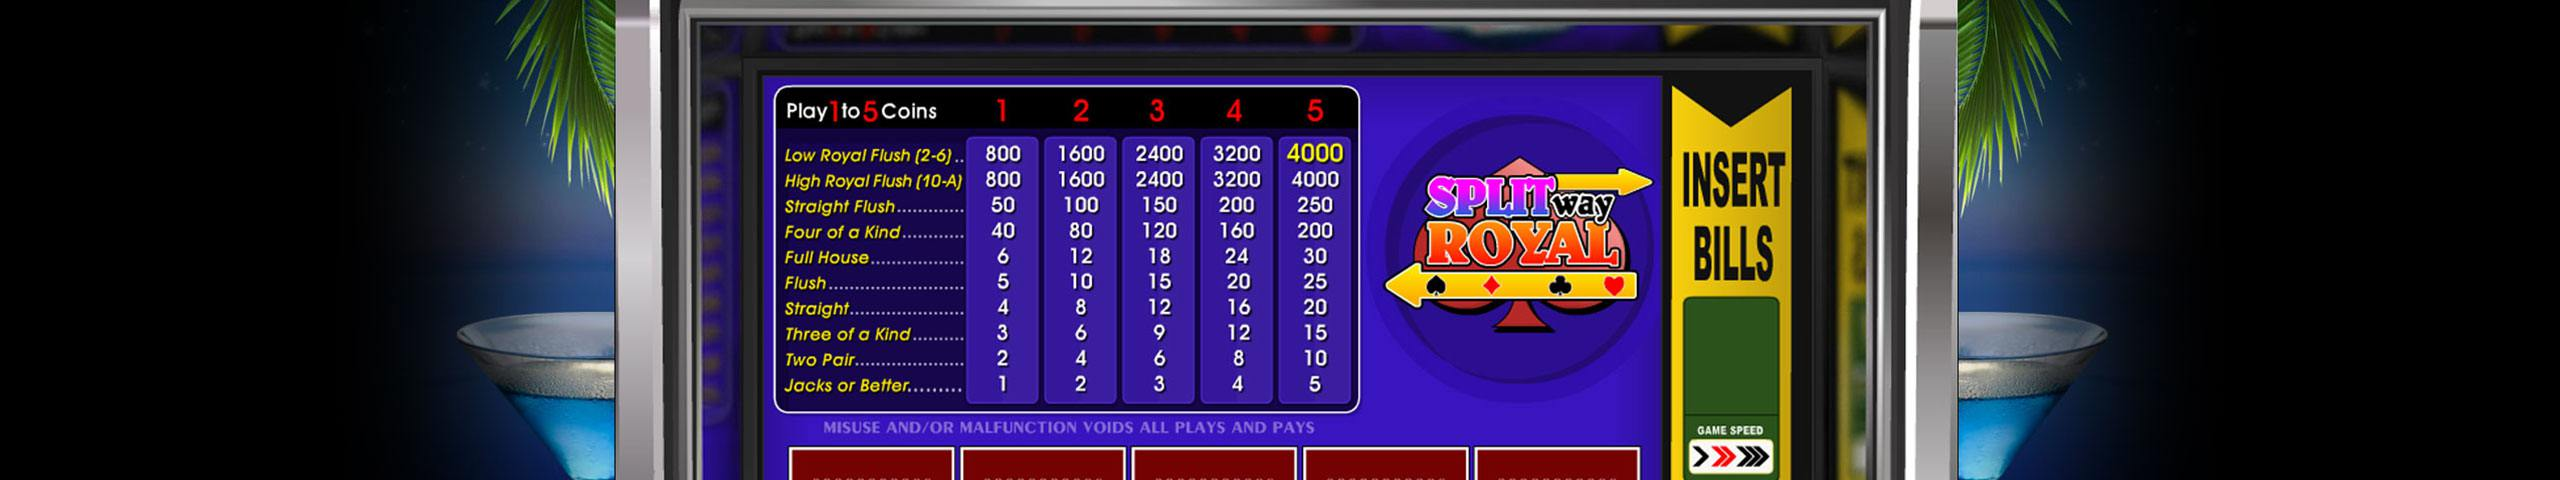 Spela 2 Ways Royal Video Poker Online på Casino.com Sverige